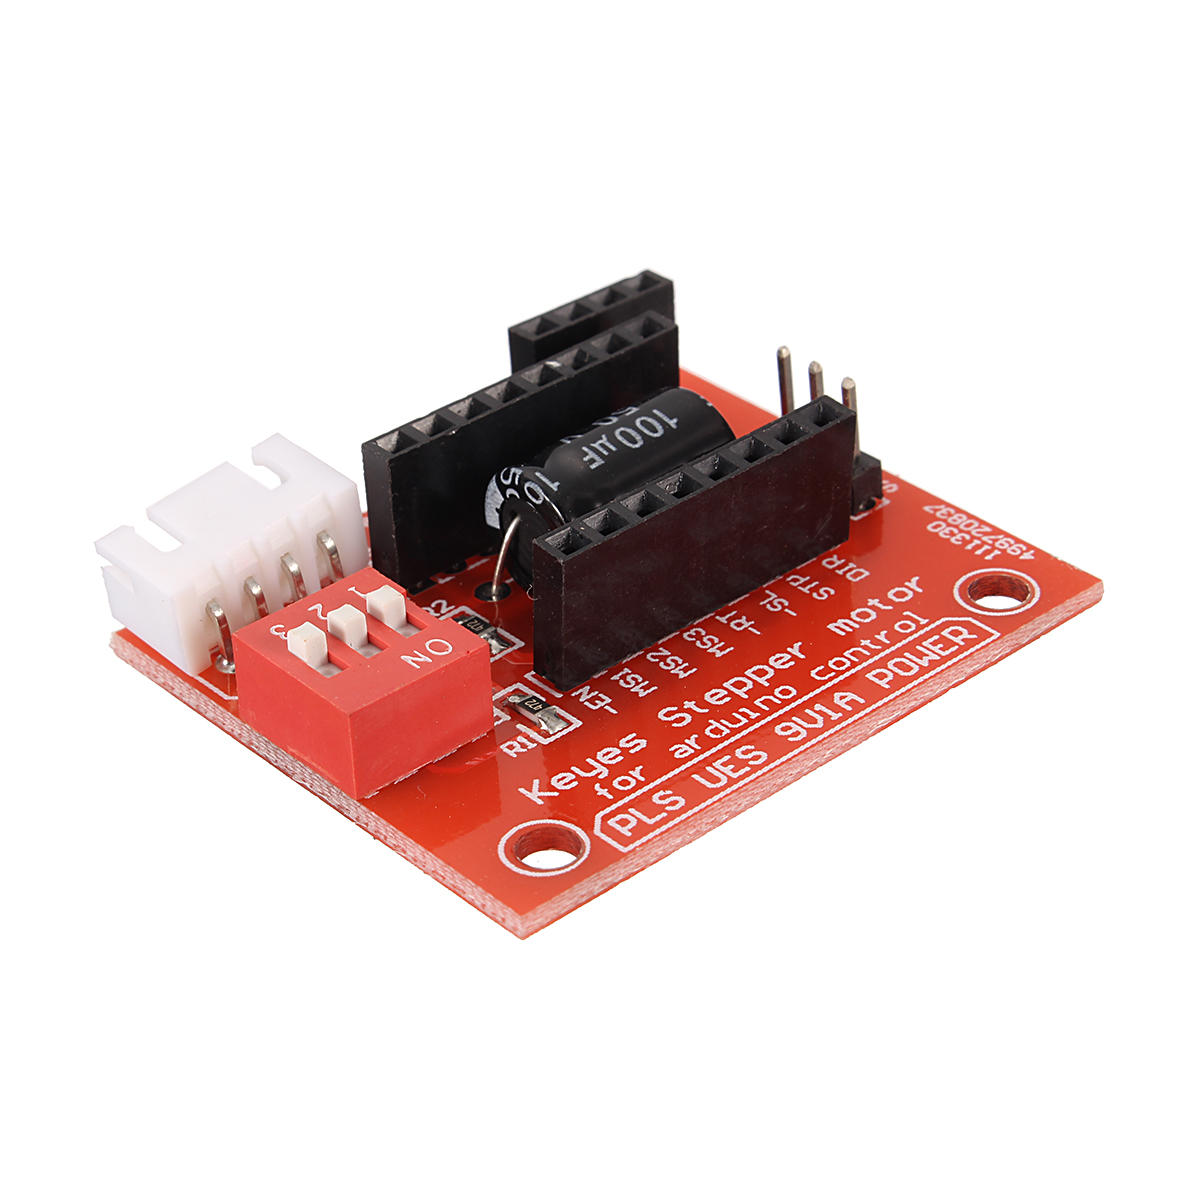 A4988 Drv8825 Stepper Motor Driver Control Board For 3d Printer To Make A Printed Circuit Using Diode Laser With Arduino